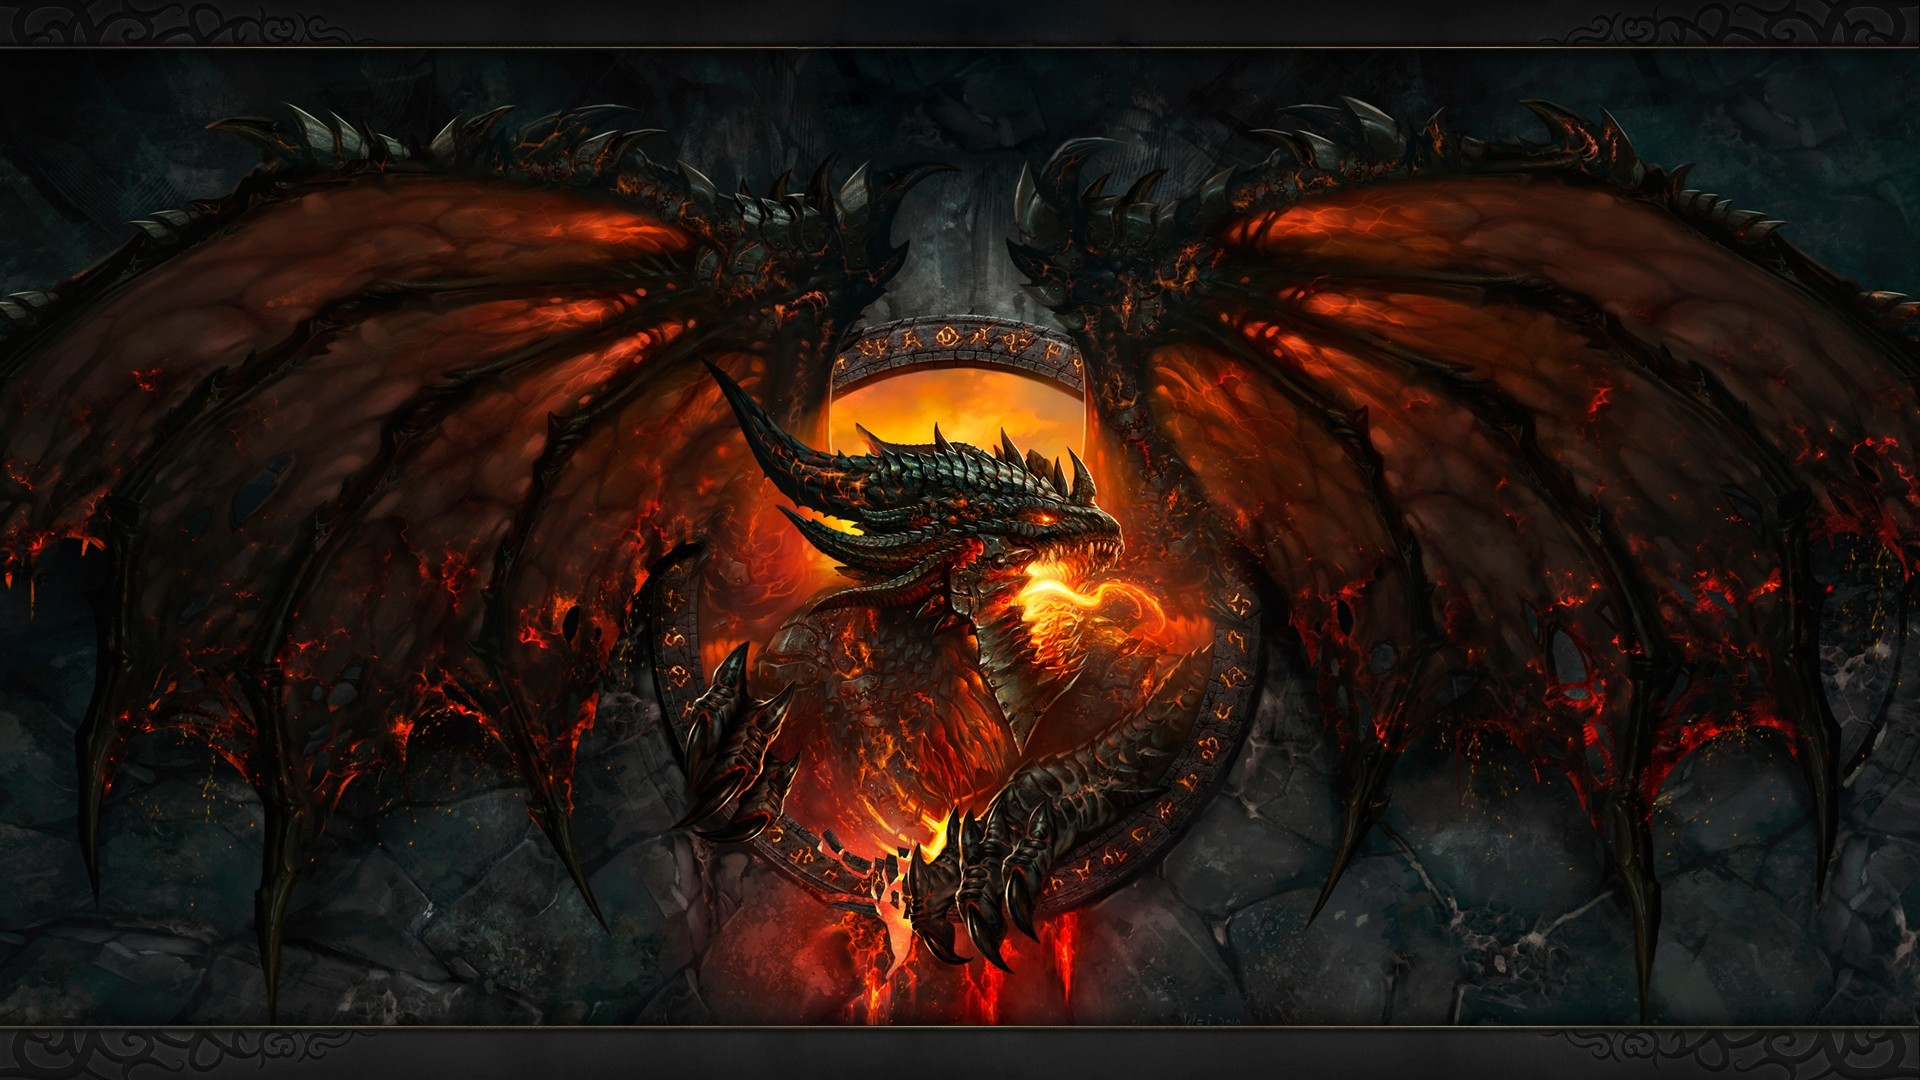 1920x1080 General dragon fire Dragon Wings wings claws fantasy art face teeth World  of Warcraft video games Deathwing